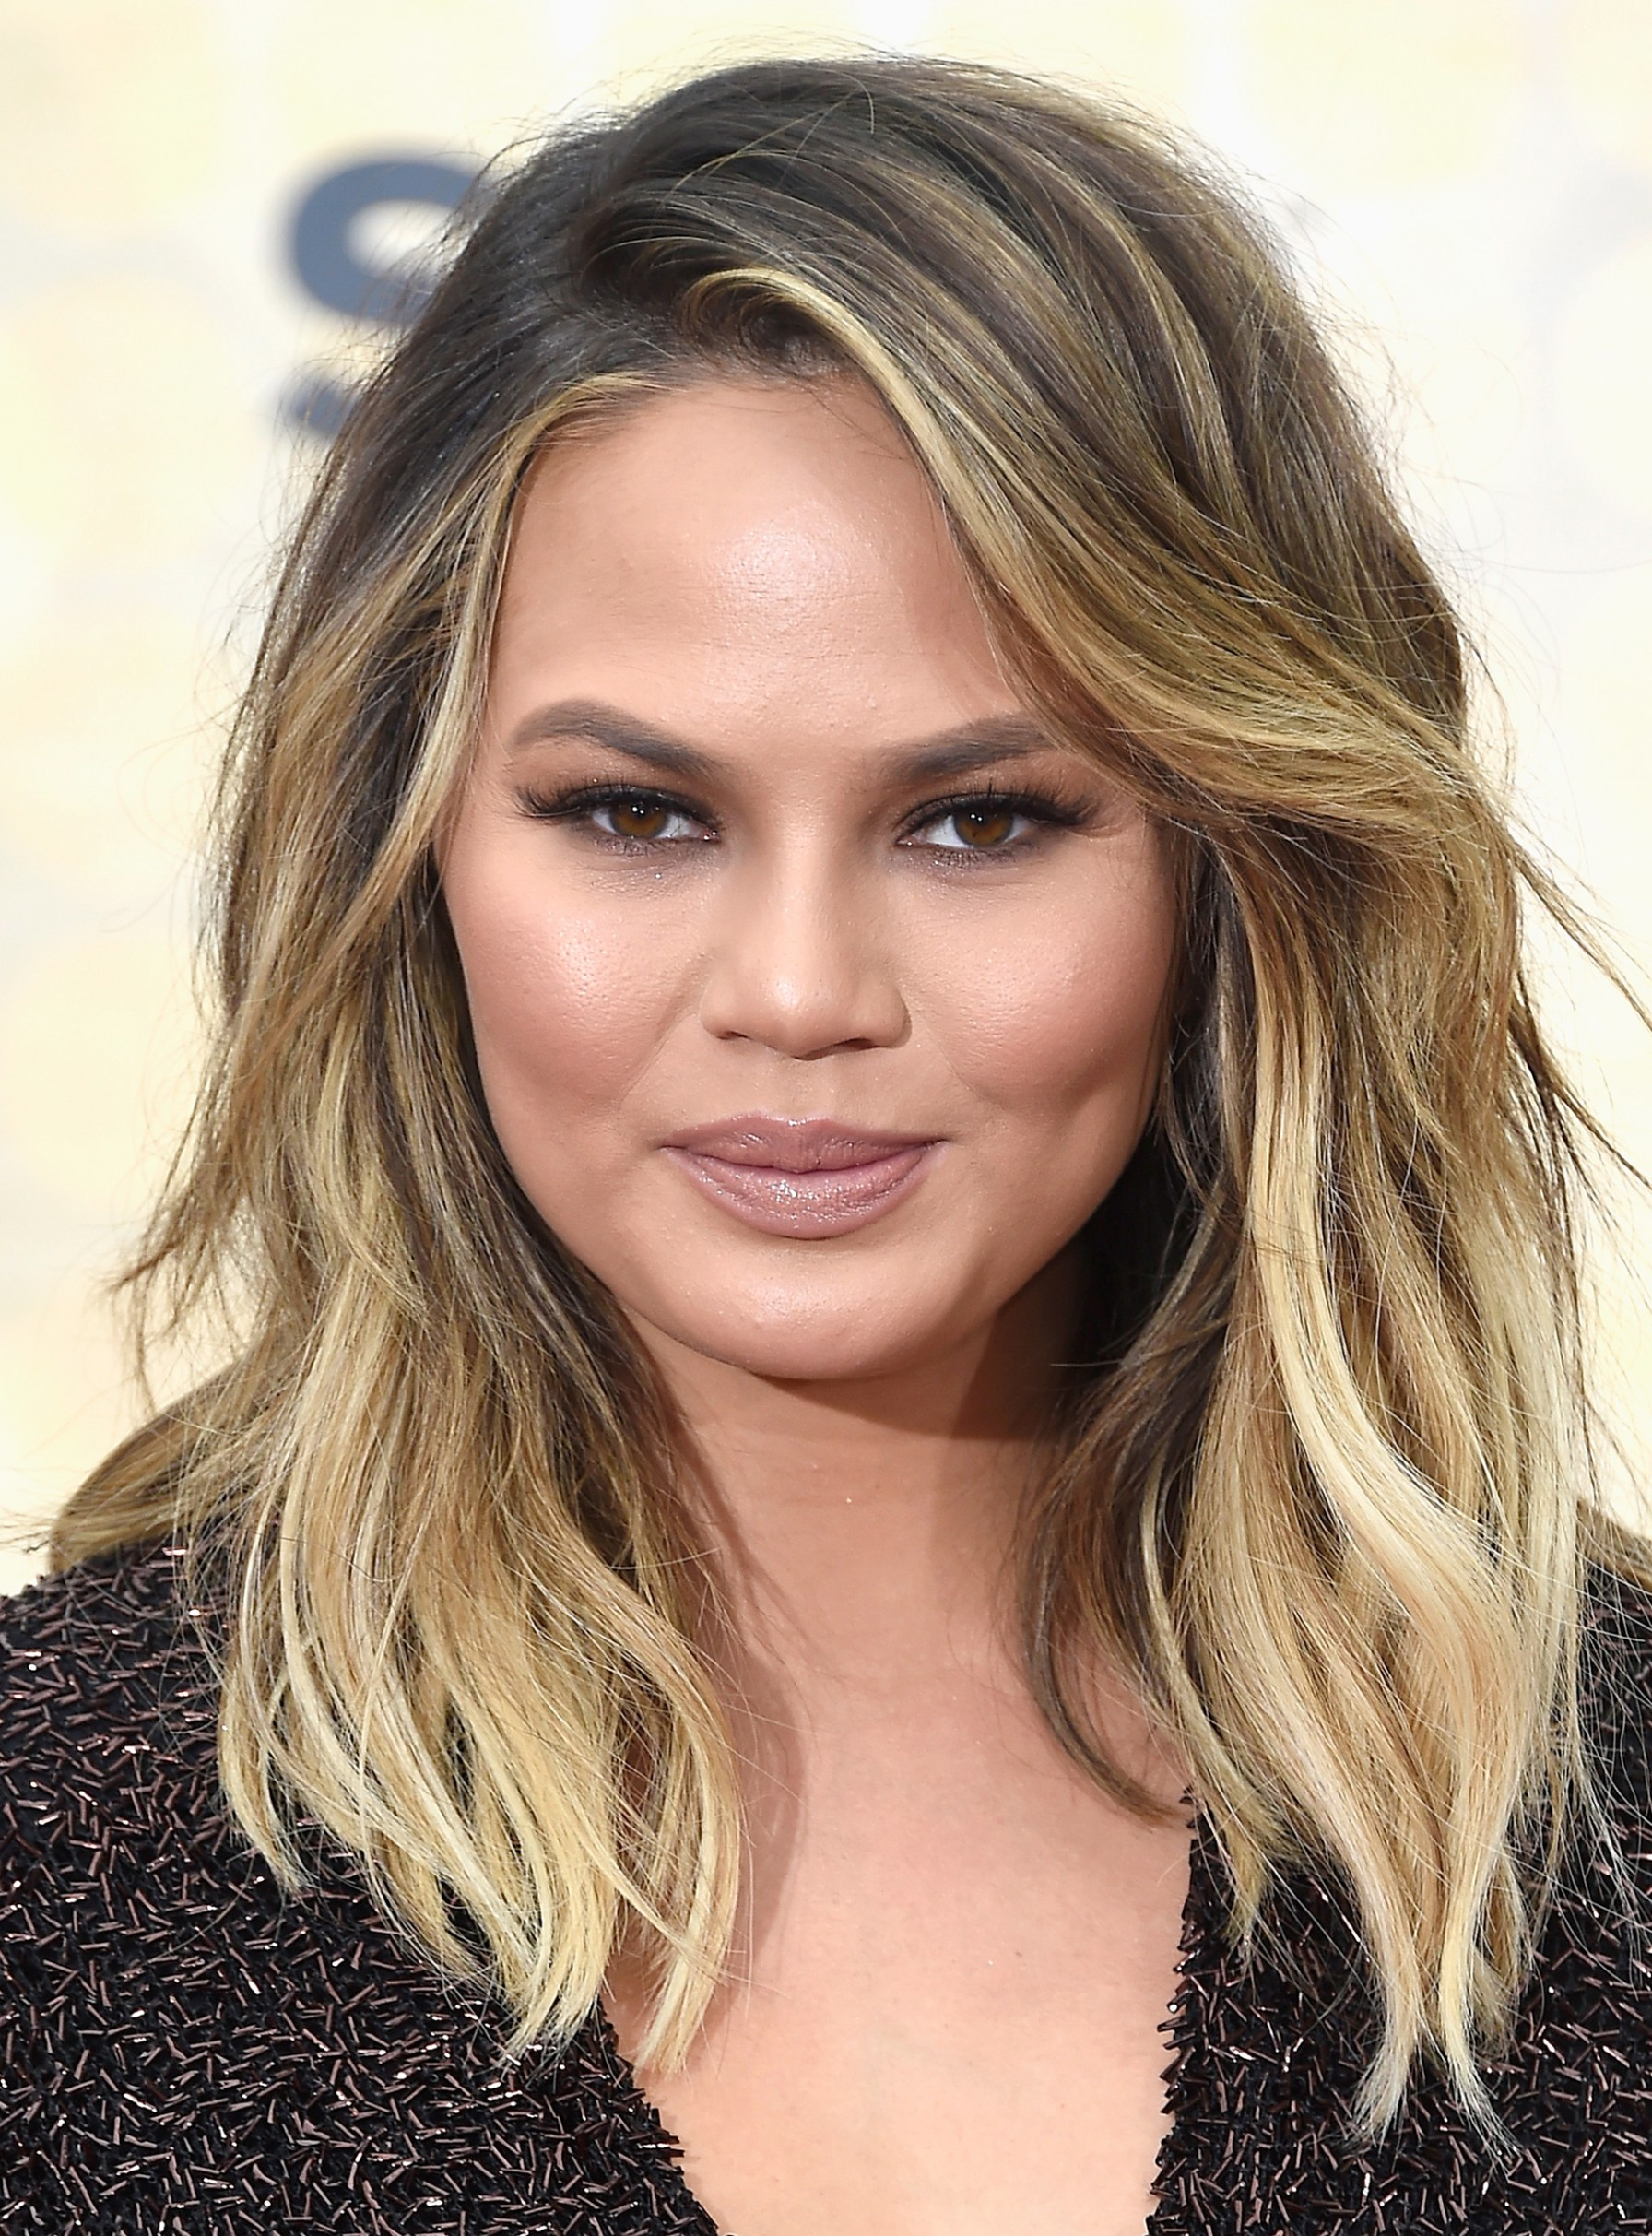 11 Best Hairstyles For Round Faces Hairstyles For Women With Fat Faces